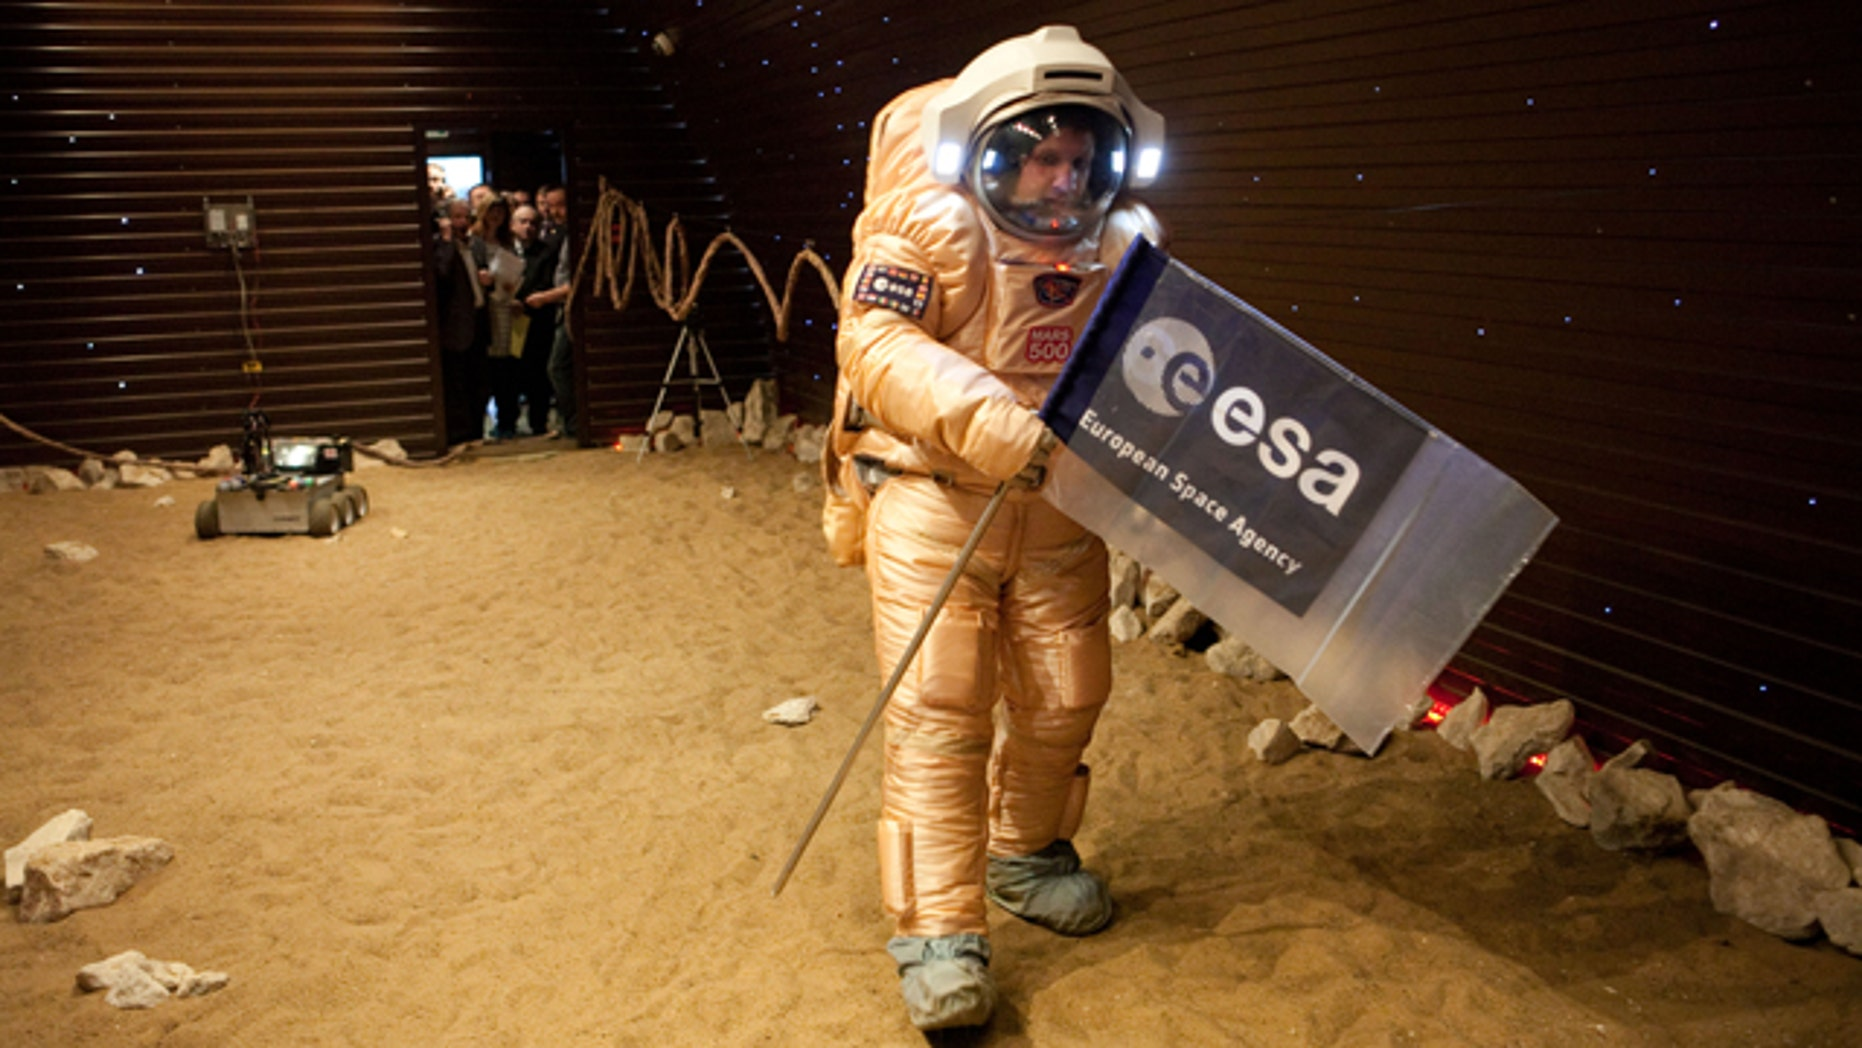 Crew training for 'Marswalk' at the simulated martian terrain of the Mars500 experiment. The terrain, about 10 m long and 6 m wide, is covered with reddish sand and is built to resemble the surface at Gusev crater.